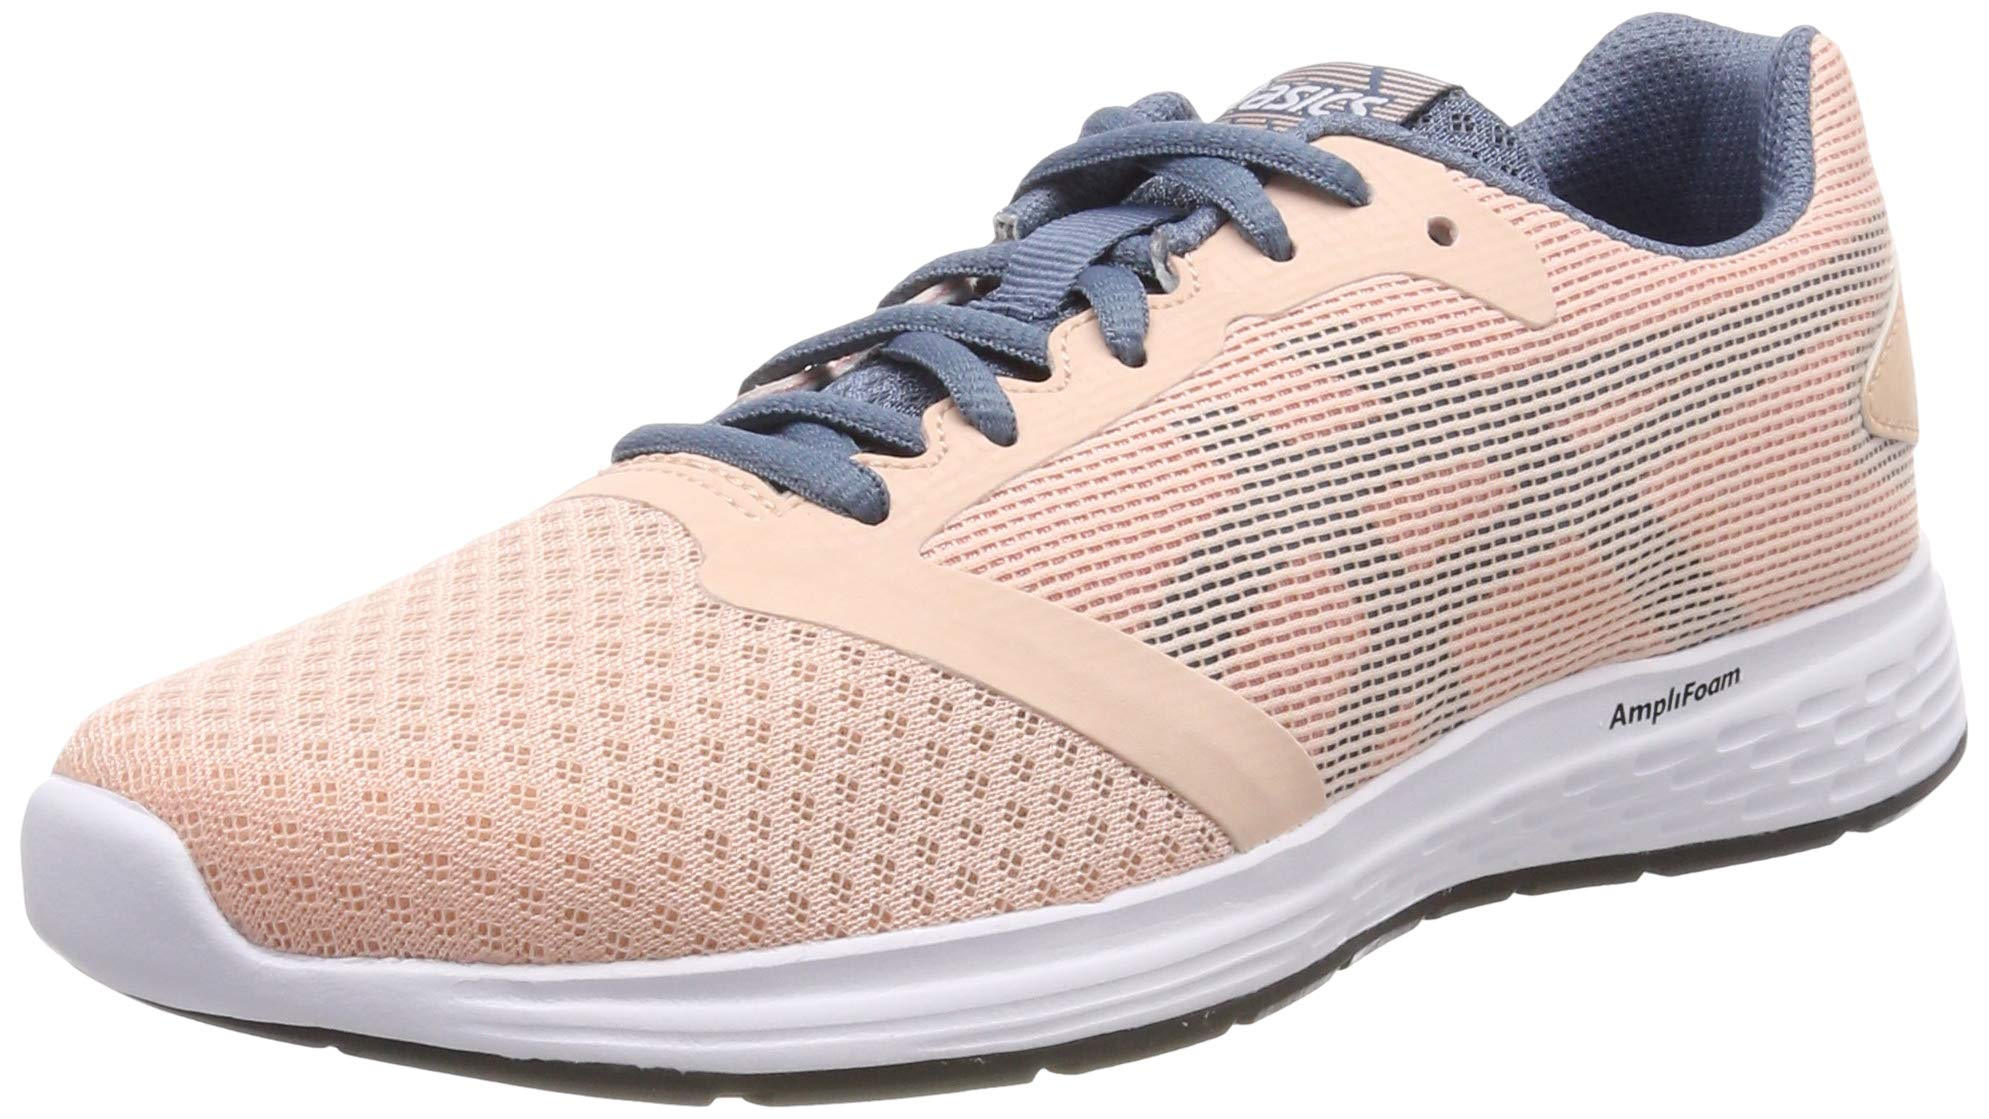 ASICS Women's Patriot 10 Running Shoes | Outdoor Equipment Review